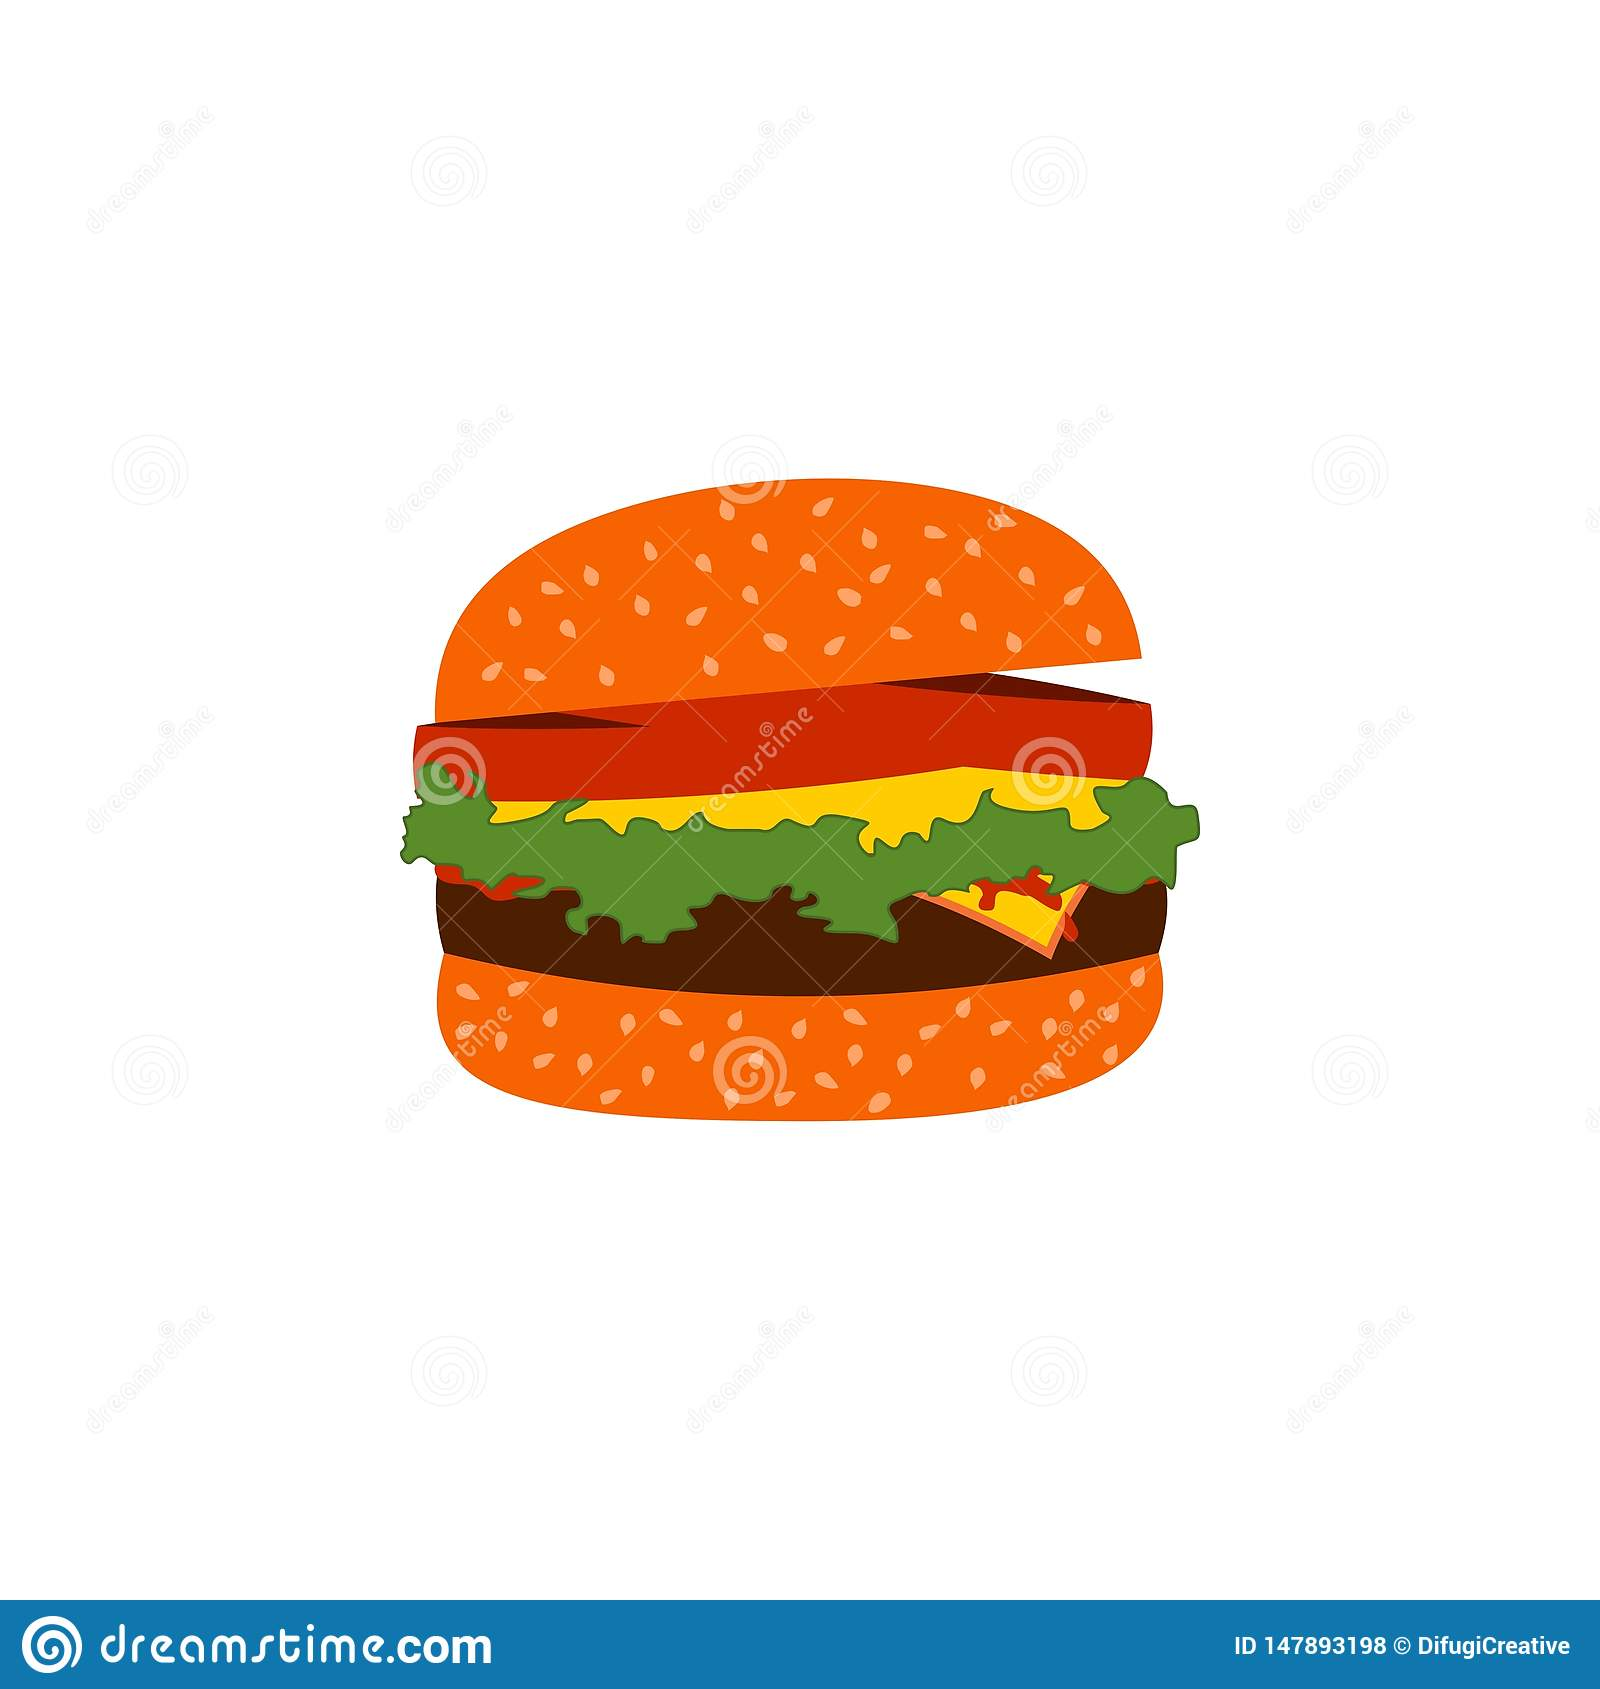 Burger fast food vector.